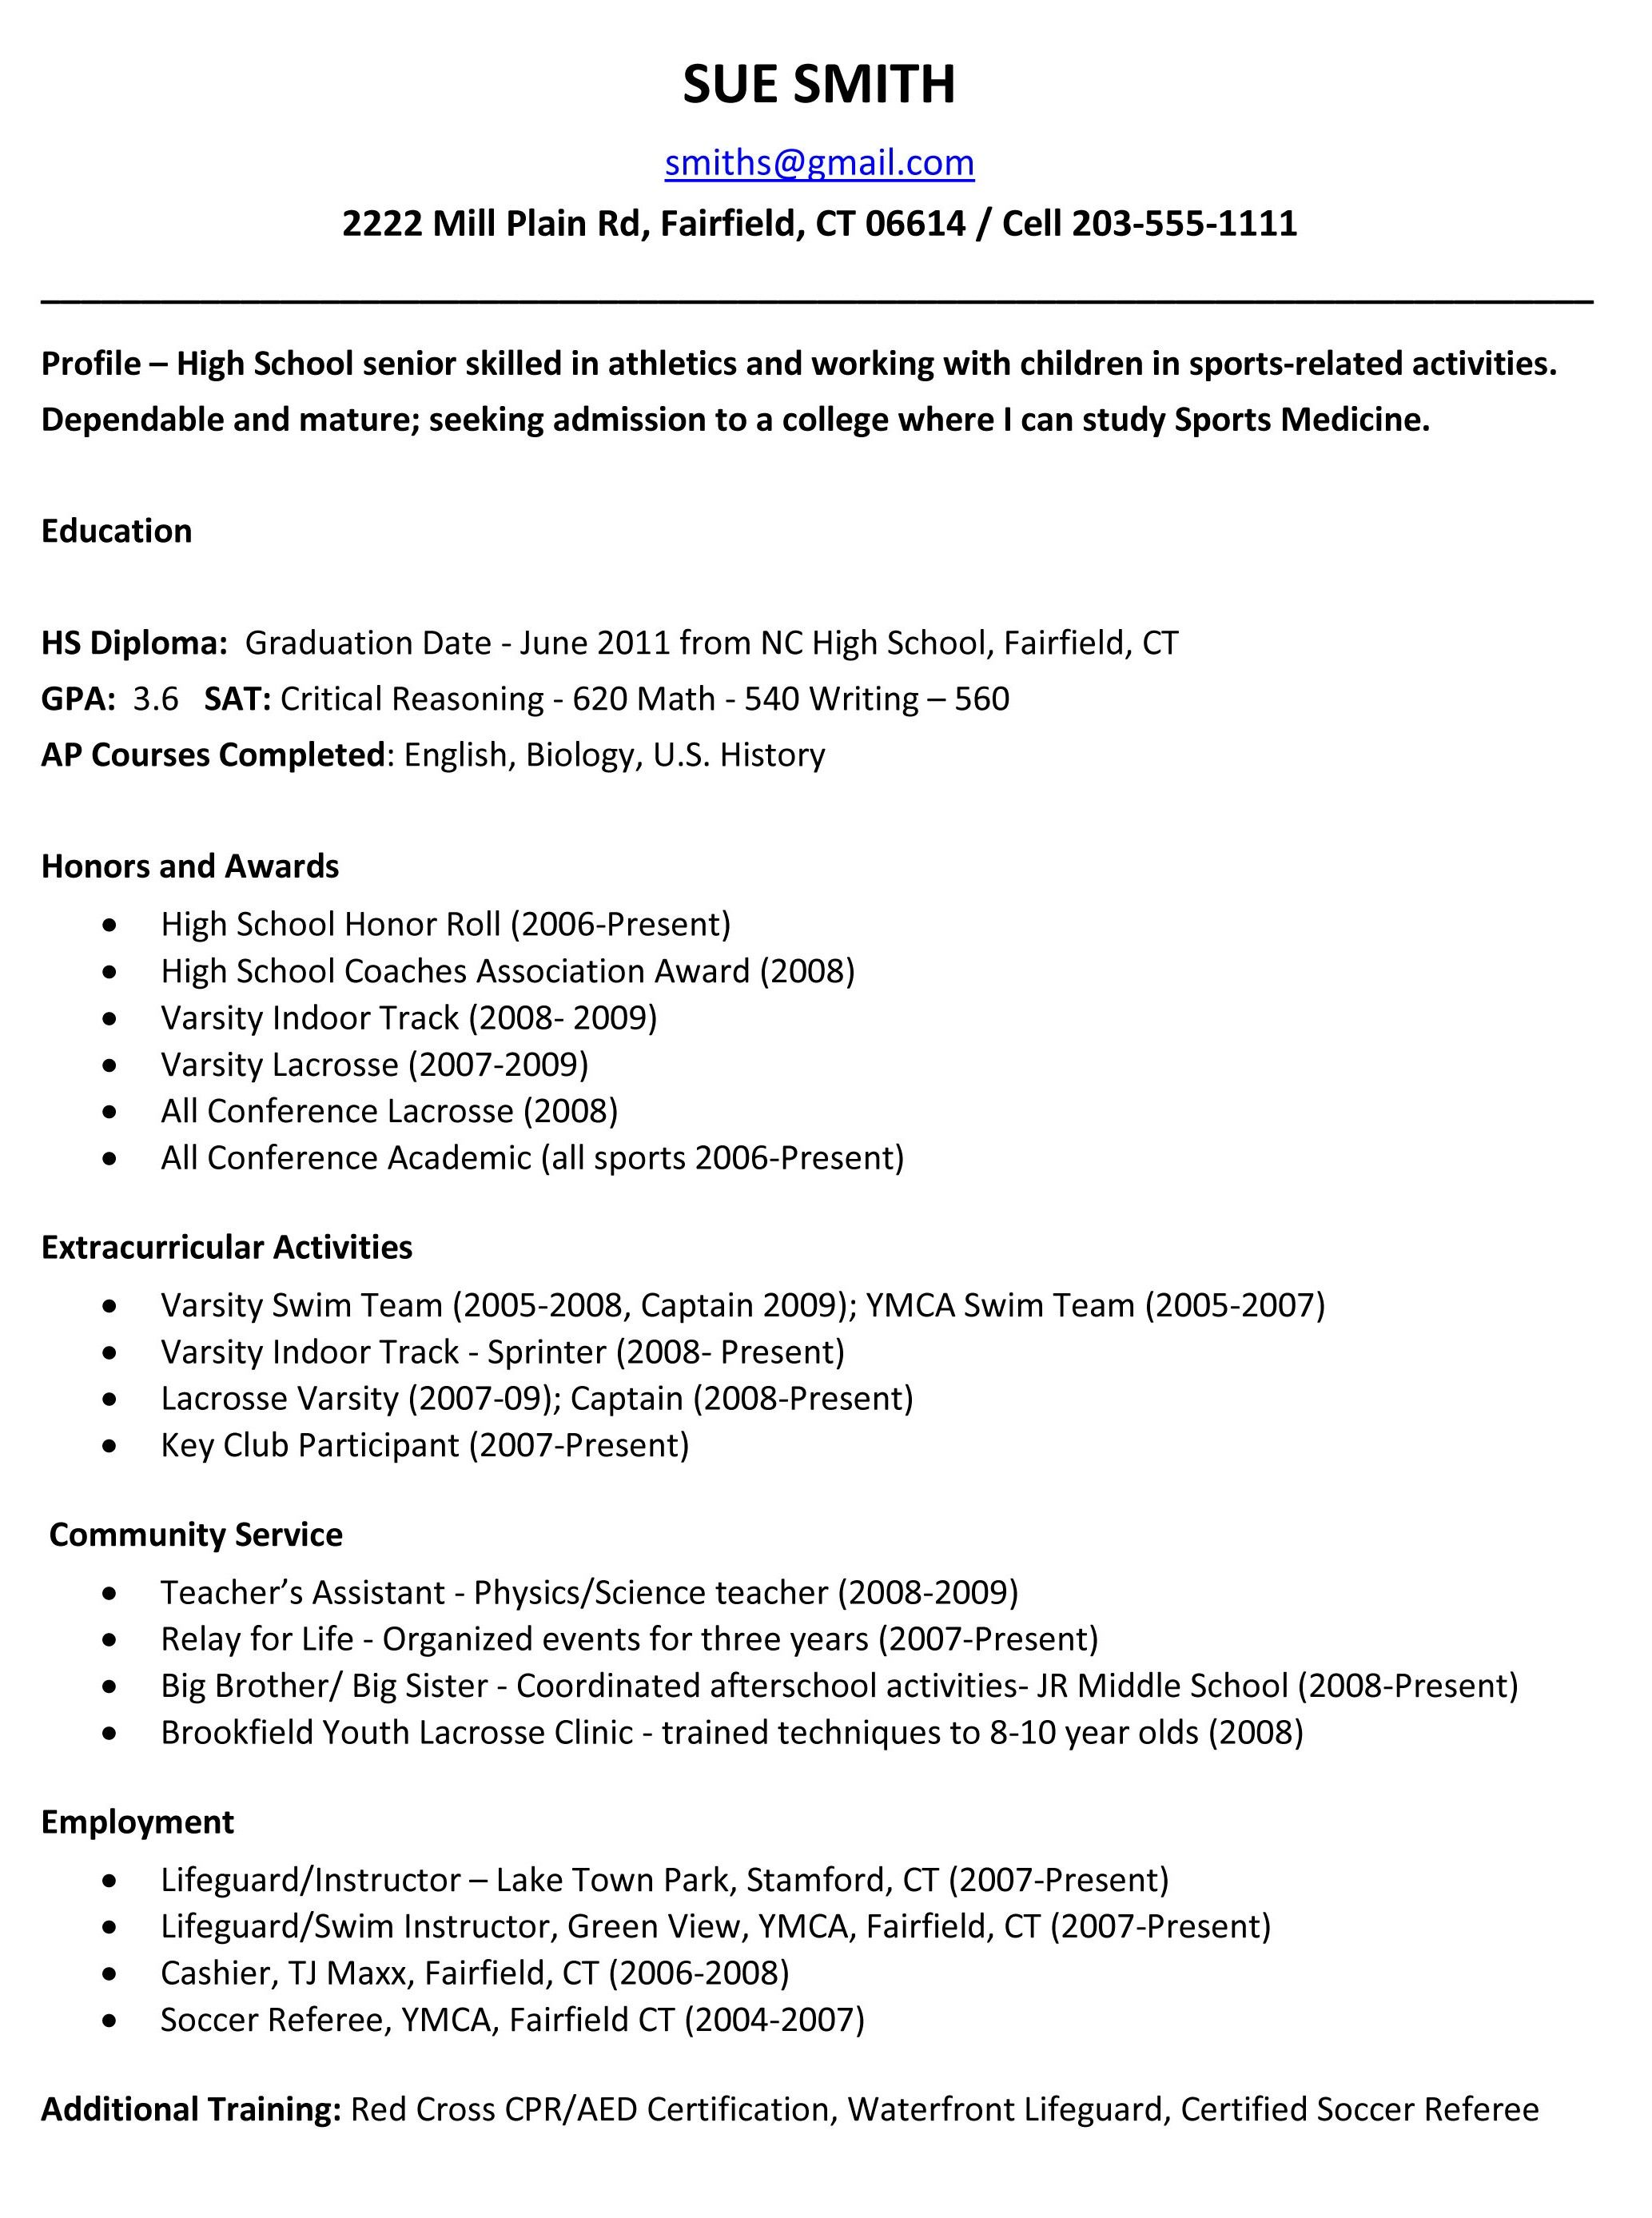 example resume for high school students for college applications school resume templateregularmidwesternerscom regularmidwesterners - Resume Samples High School Graduate